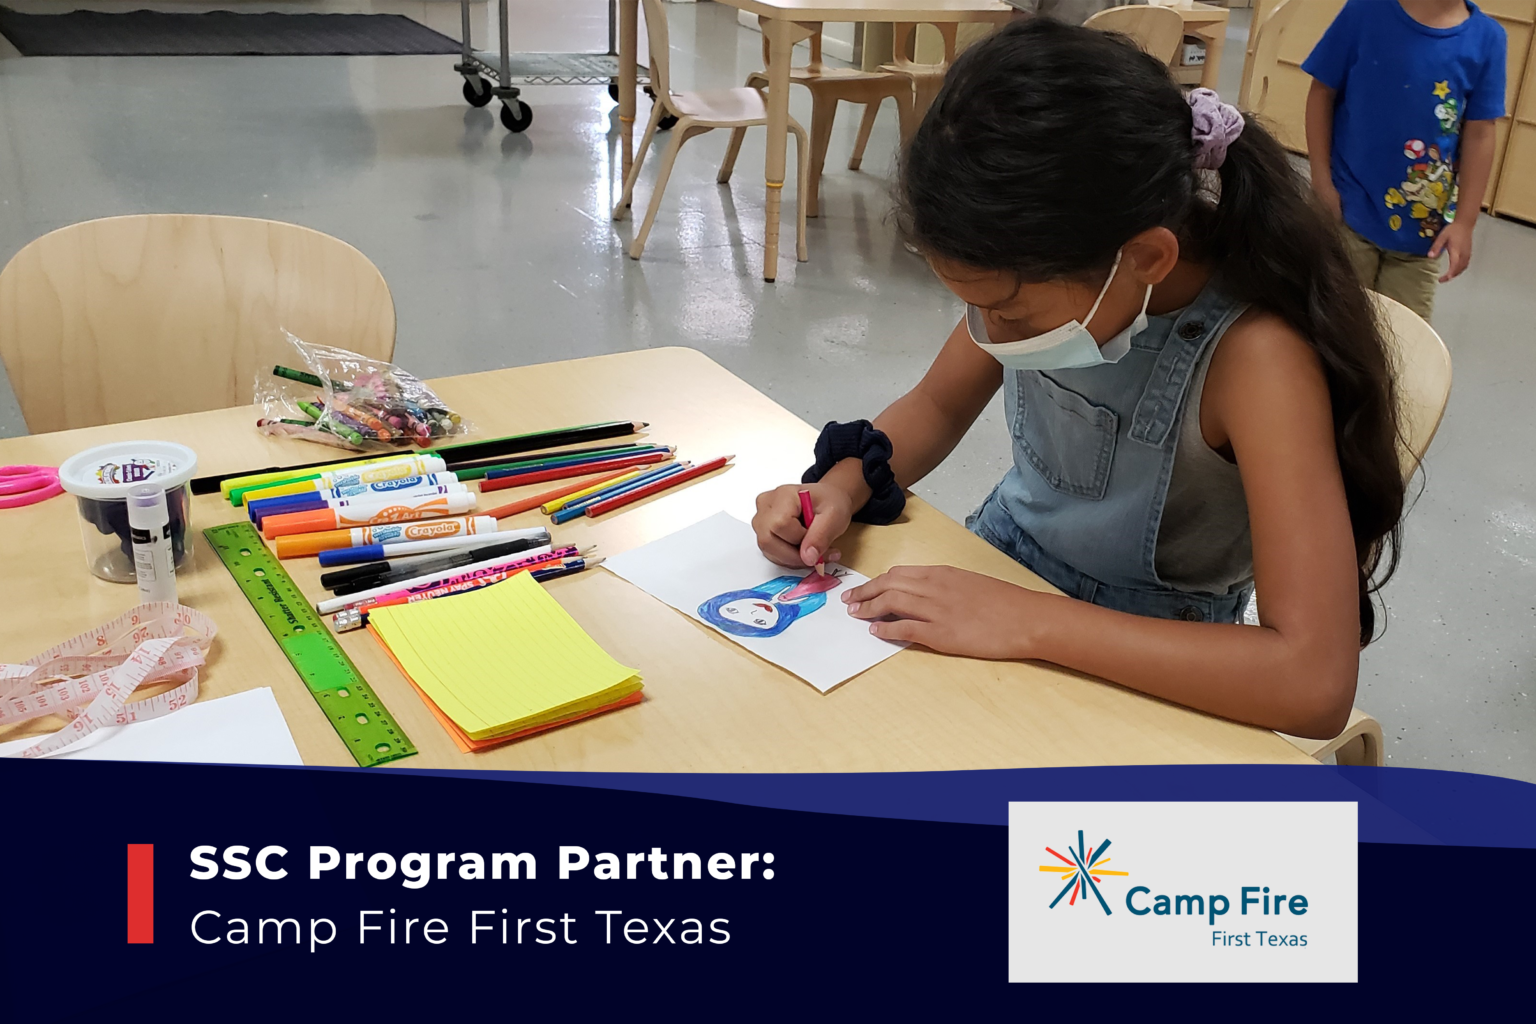 SSC Program Partner Camp Fire First Texas